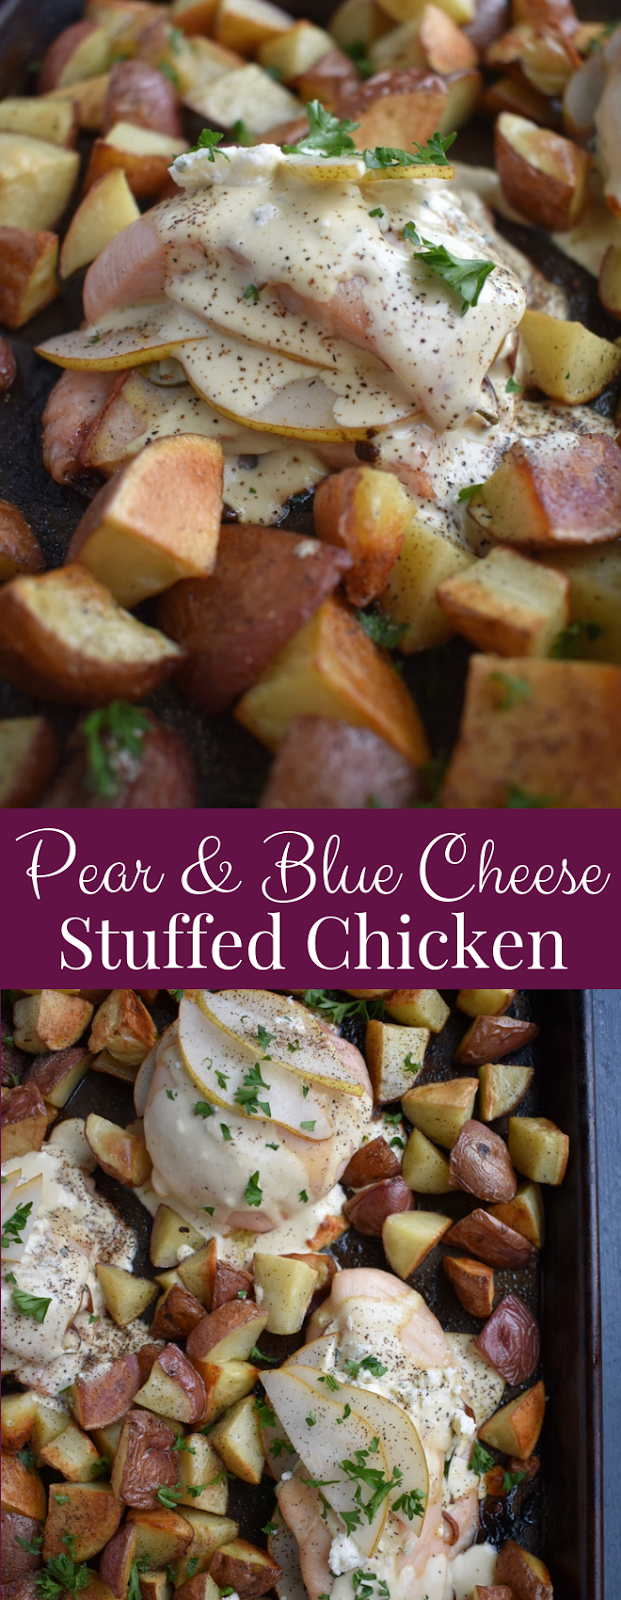 Pear and Blue Cheese Stuffed Chicken features an oven baked chicken breast stuffed with fresh pears, blue cheese and spinach and is topped with a creamy Dijon sauce! www.nutritionistreviews.com #chicken #dinner #healthy #holidays #holidayrecipes #sheetpan